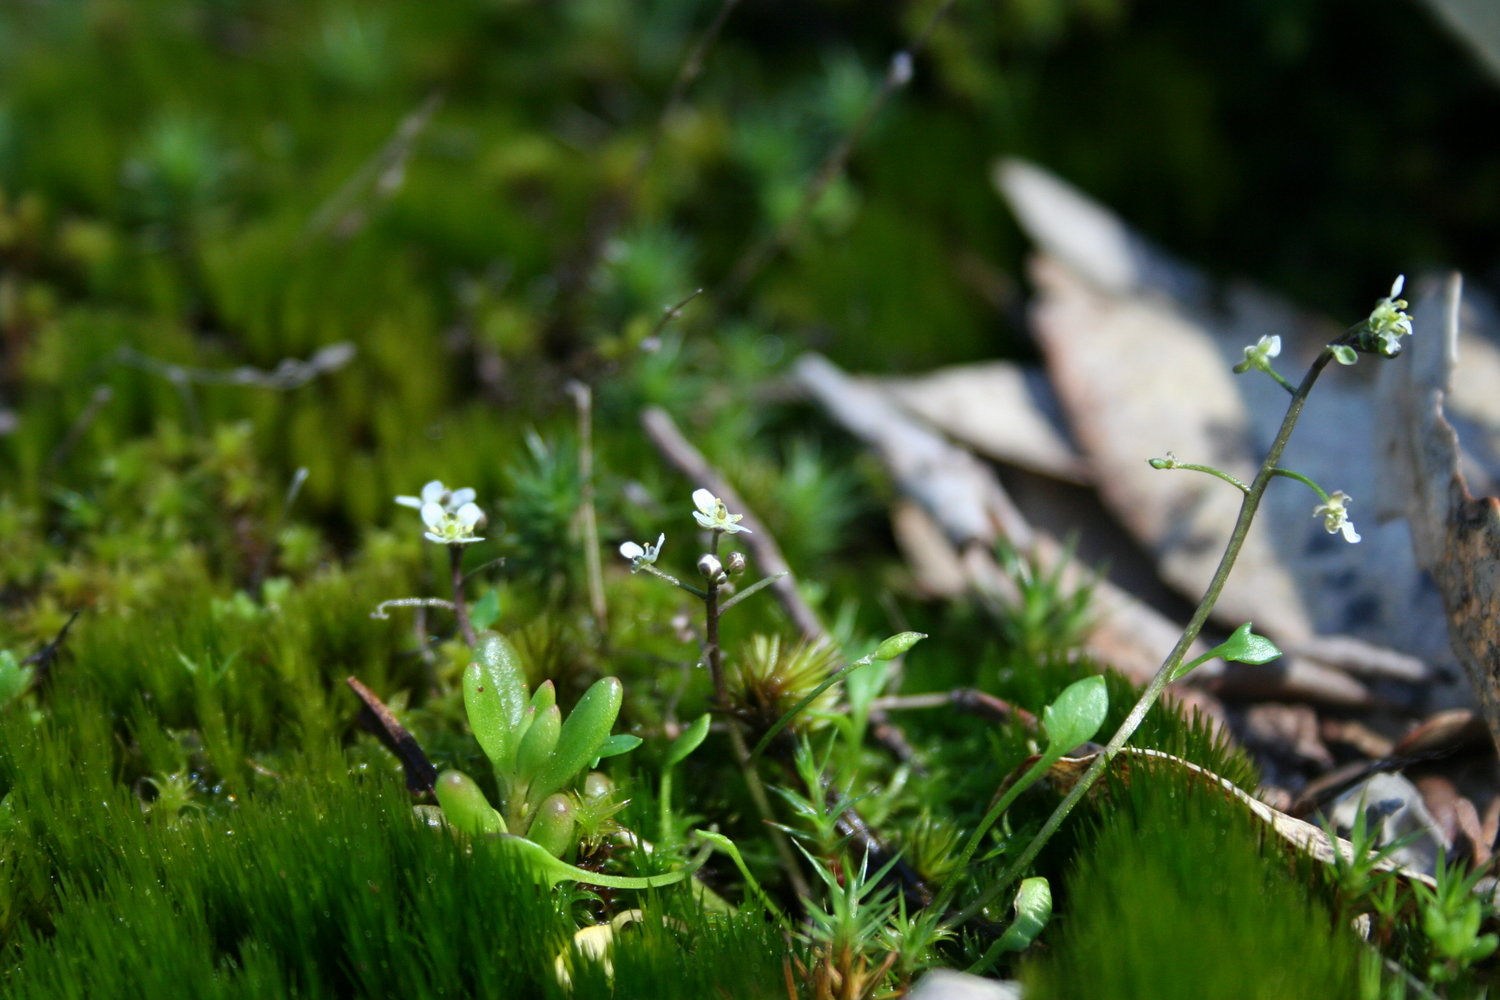 Ballantinia antipoda  (Southern shepherd's purse), an endangered plant threatened by climate change.